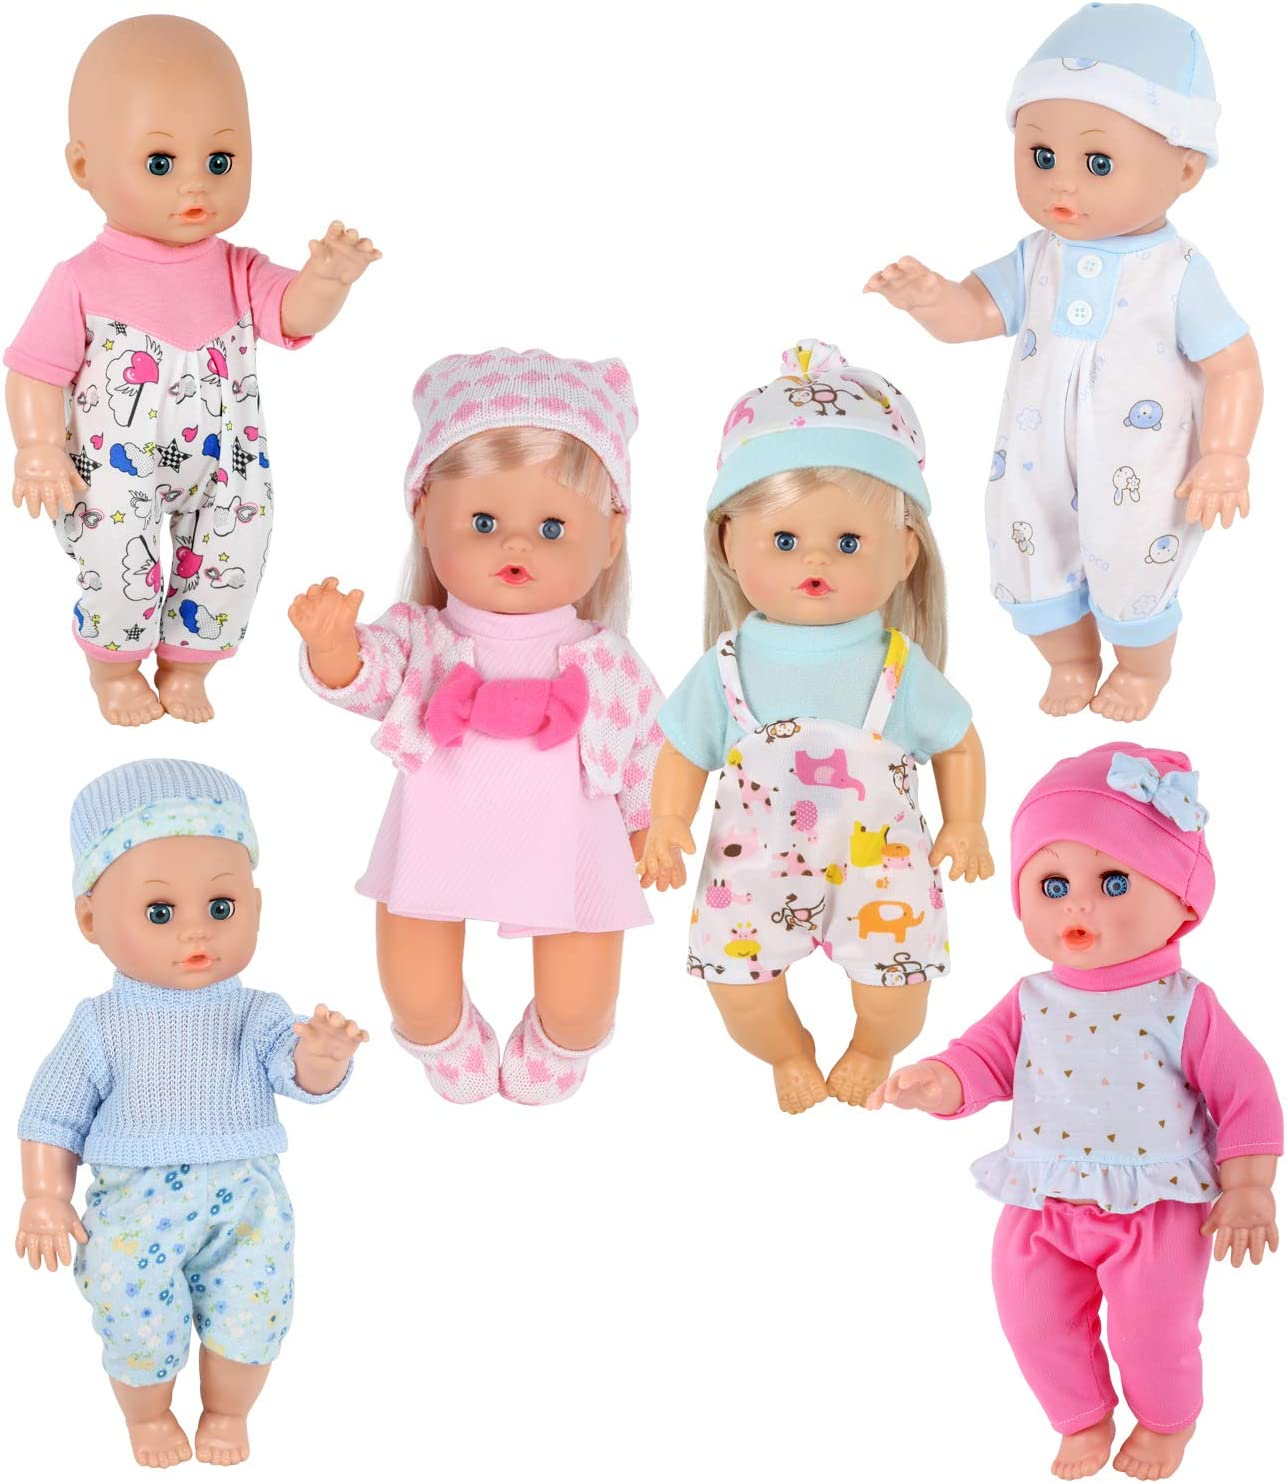 "Newborn Clothes Mini Reborn Little Baby Girl Clothing Gifts For 10/""-11/'/' Dolls"